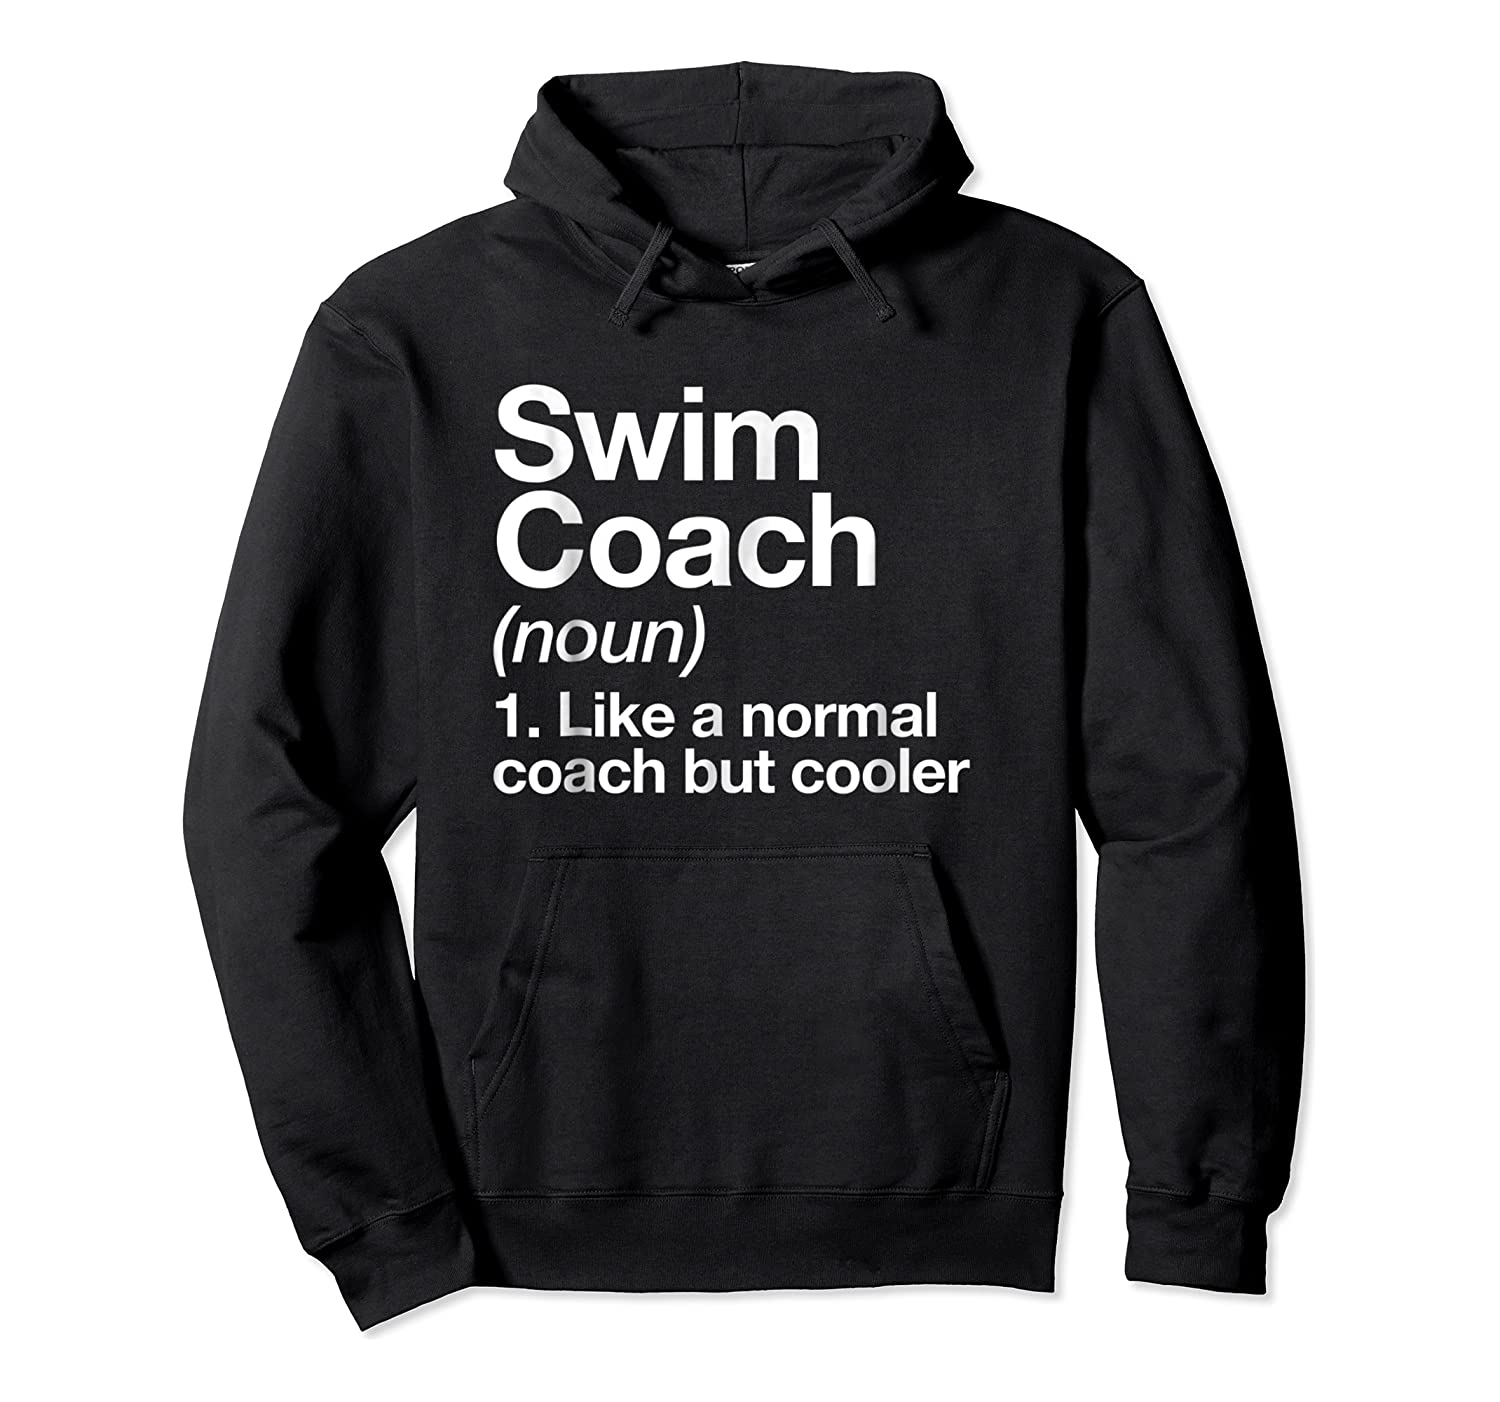 Swim Coach Funny Definition Trainer Gift Shirts Unisex Pullover Hoodie